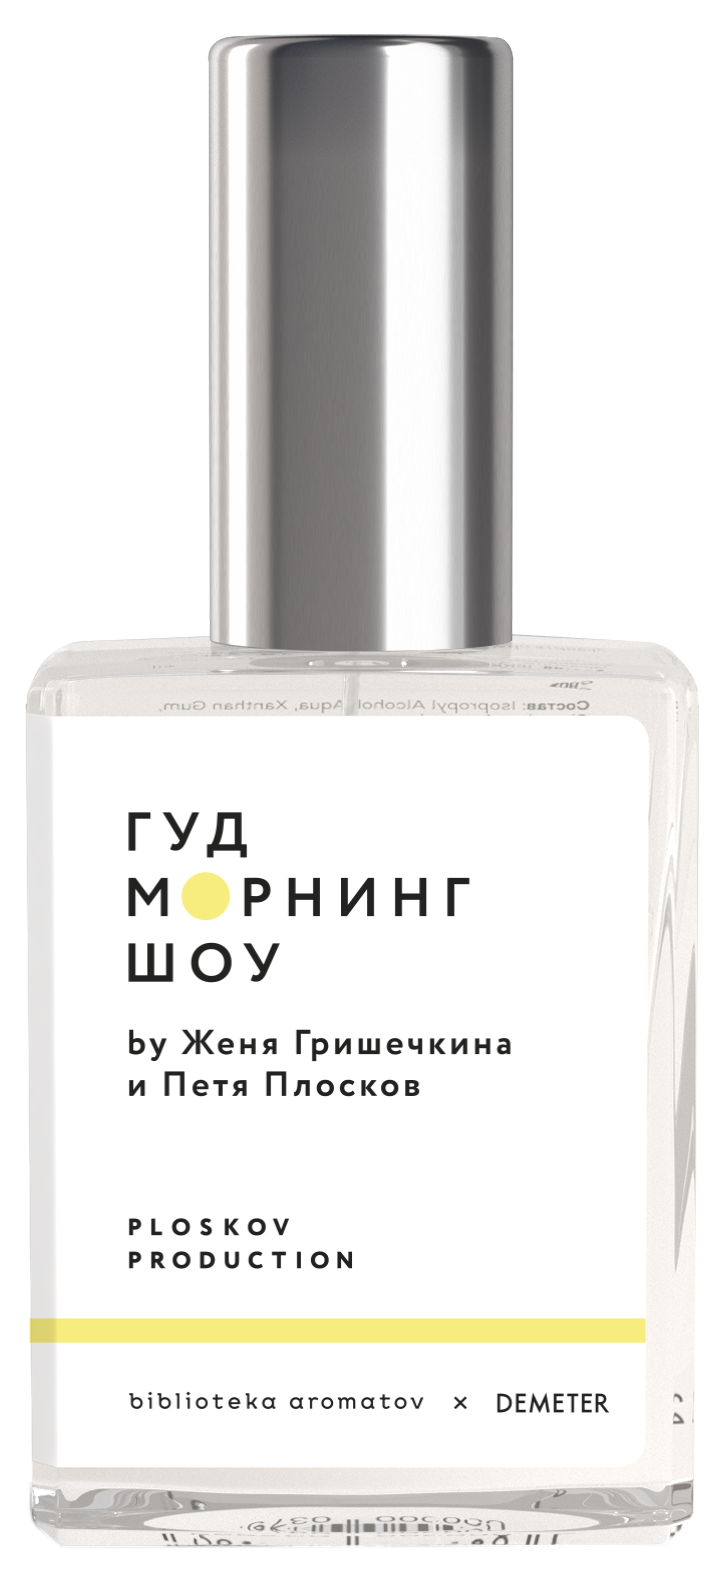 Купить Demeter Fragrance Library Духи-спрей «Гуд морнинг шоу» () 30мл